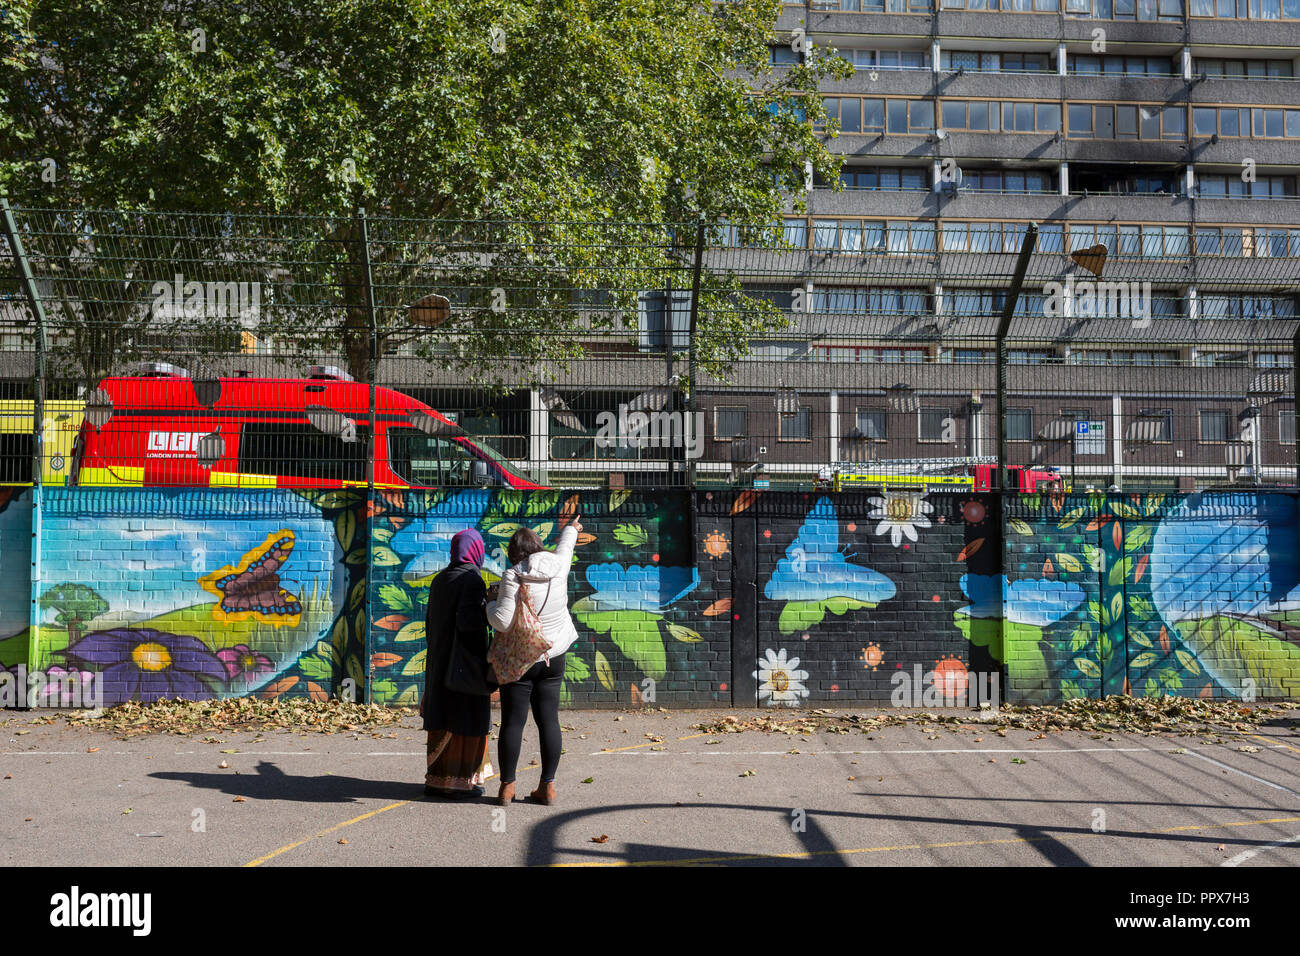 Local estate residents look up at smoke damage aftermath on the exterior of a flat fire in one of the two Wendover blocks on Alsace Road in the Aylesbury Estate, Southwark SE17, on 24th September 2018, in London, England. Part of a split level flat on the fourth and fifth floor of the 15-storey block was damaged. One woman and two children left the property before the Brigade arrived. They were treated at the scene for smoke inhalation by London Ambulance Service crews and taken too hospital. Another man was also treated at the scene for smoke inhalation. - Stock Image